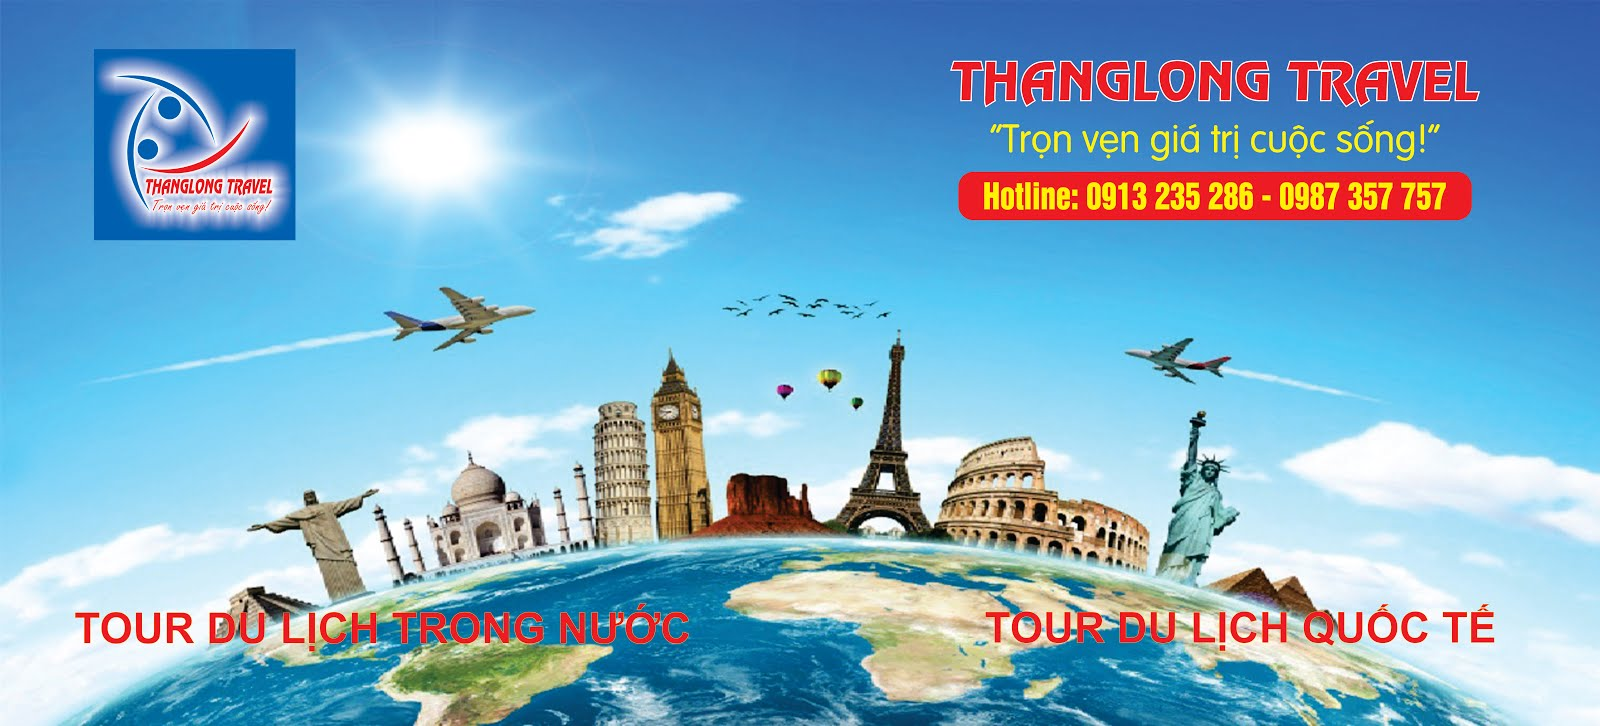 THANGLONG TRAVEL